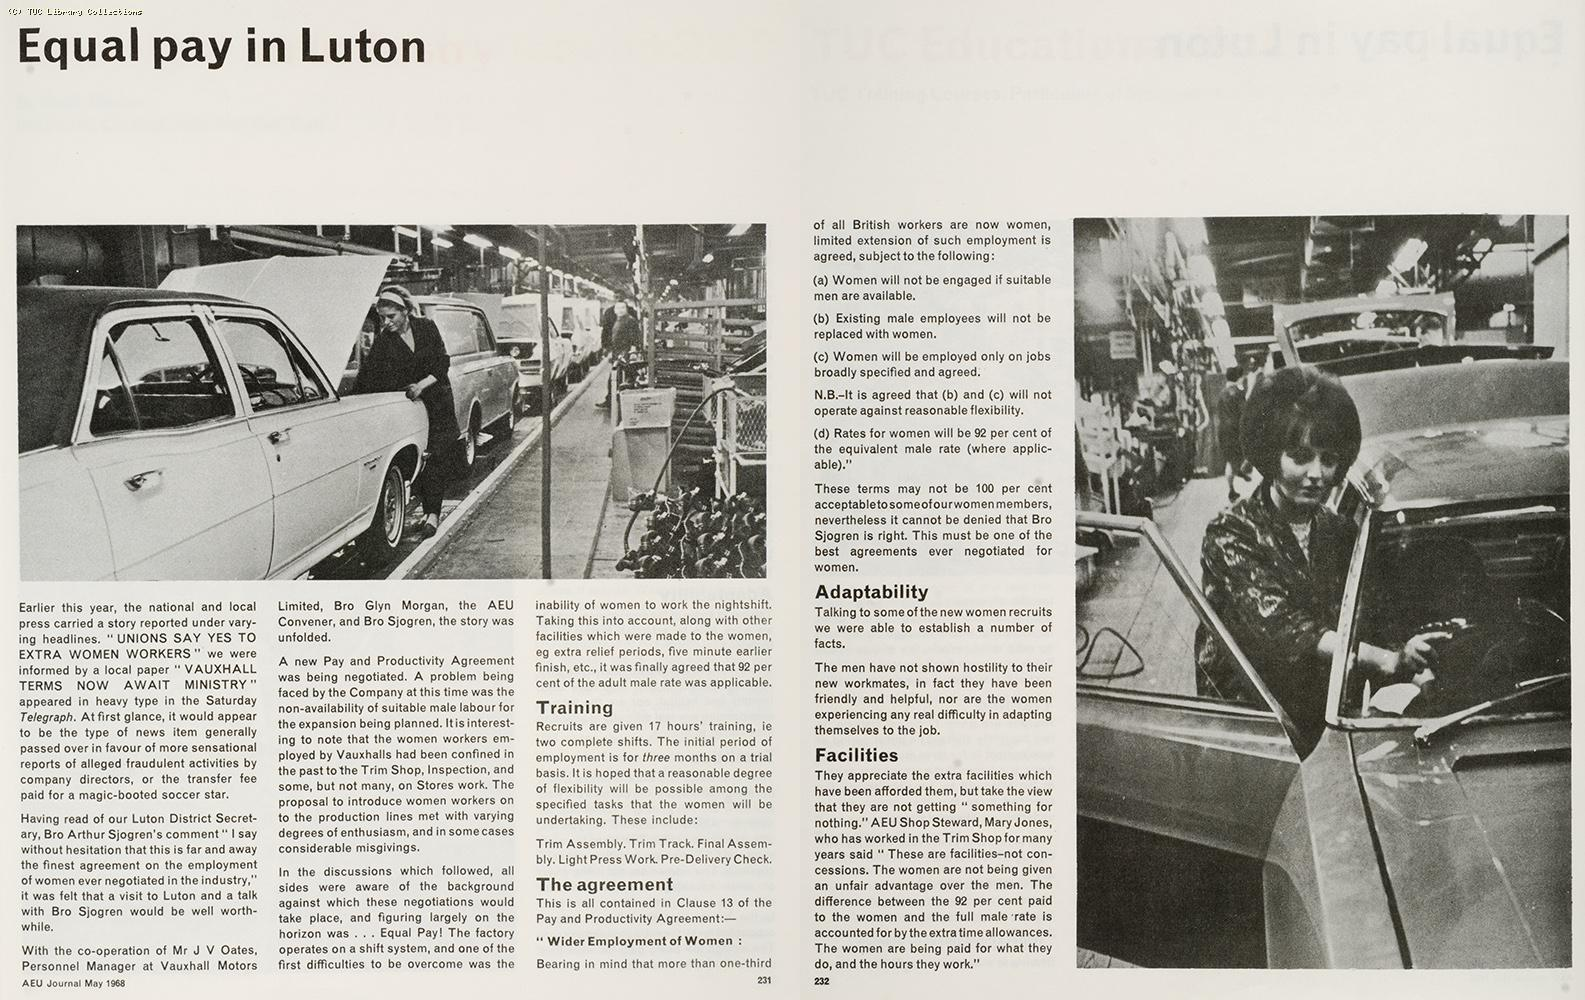 Equal pay in Luton, 1968